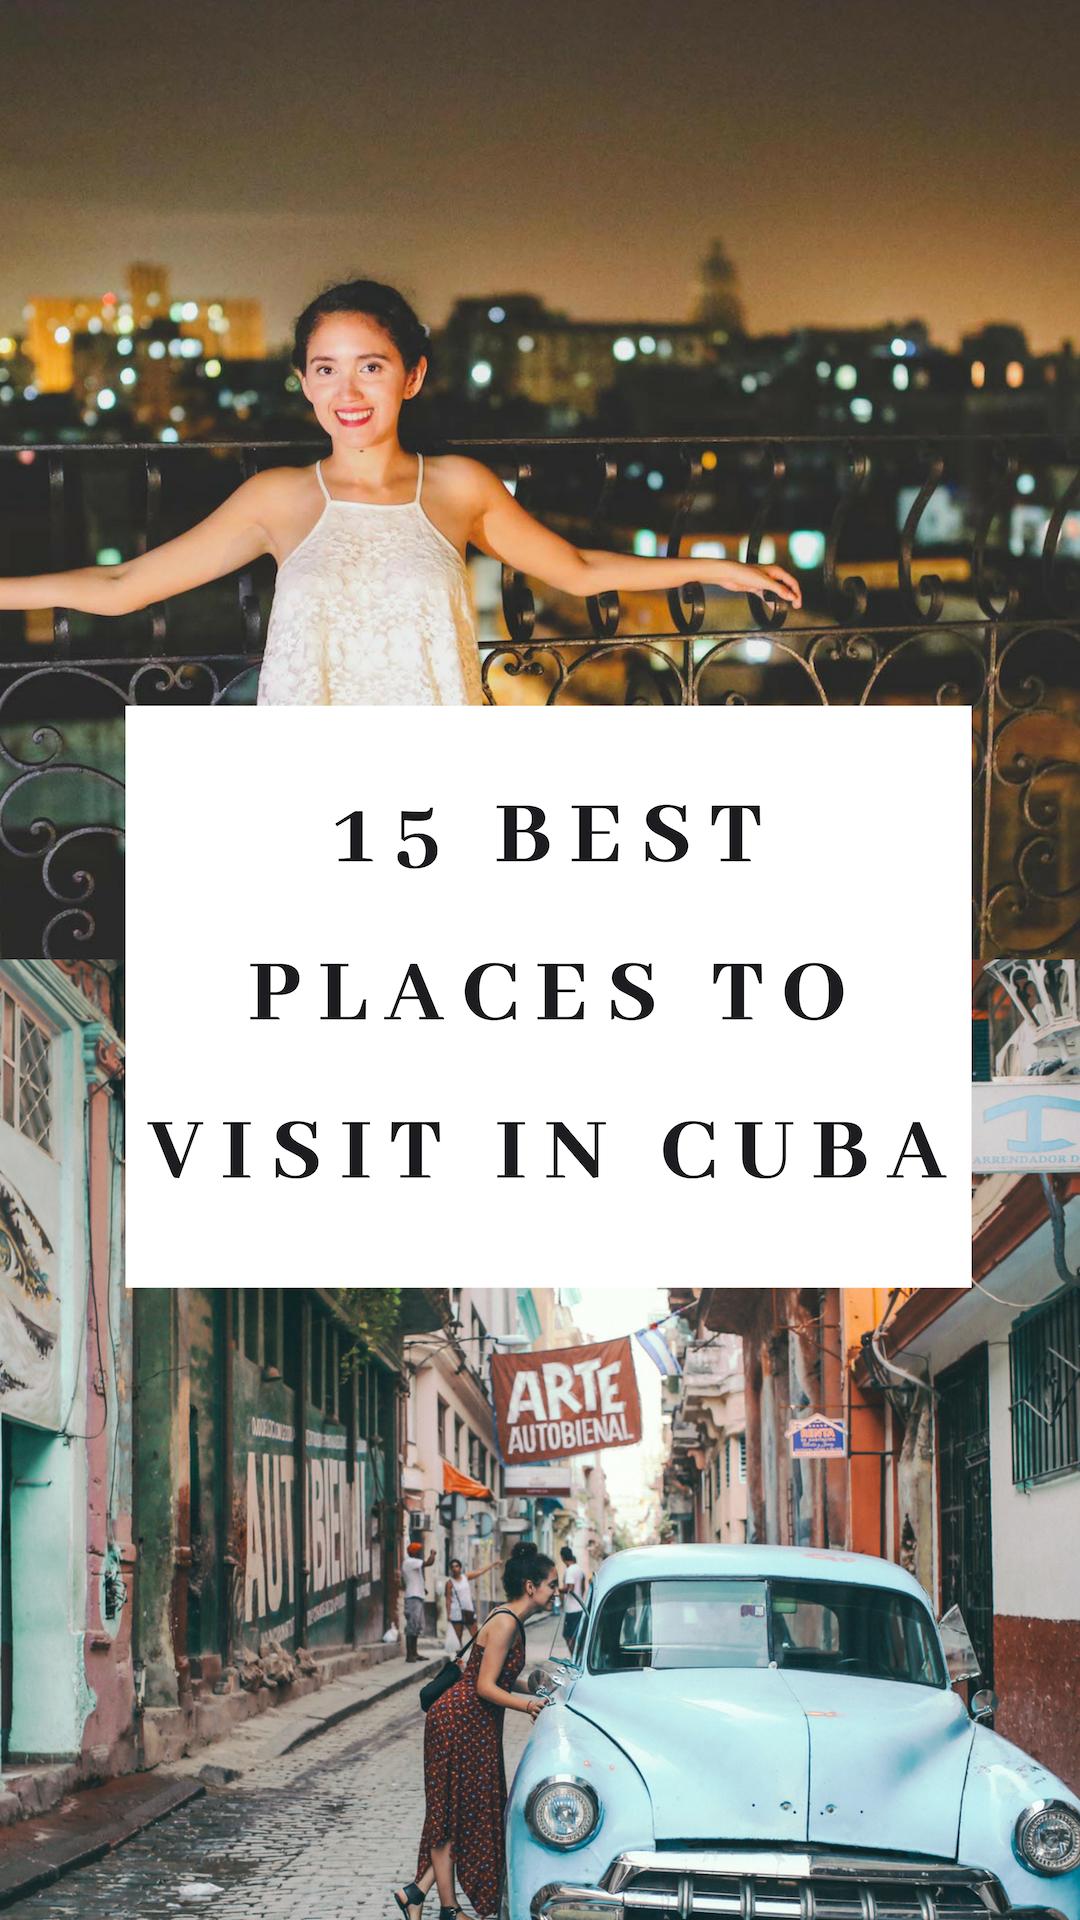 15 best places to visit in Cuba from east to west. Curated by a Cuba travel expert and with top insights from professional travel bloggers. Visiting Cuba and can't decided which destinations to visit? This is your guide to the regions, places, parts and unique cities of Cuba that can't be missed on your next trip!